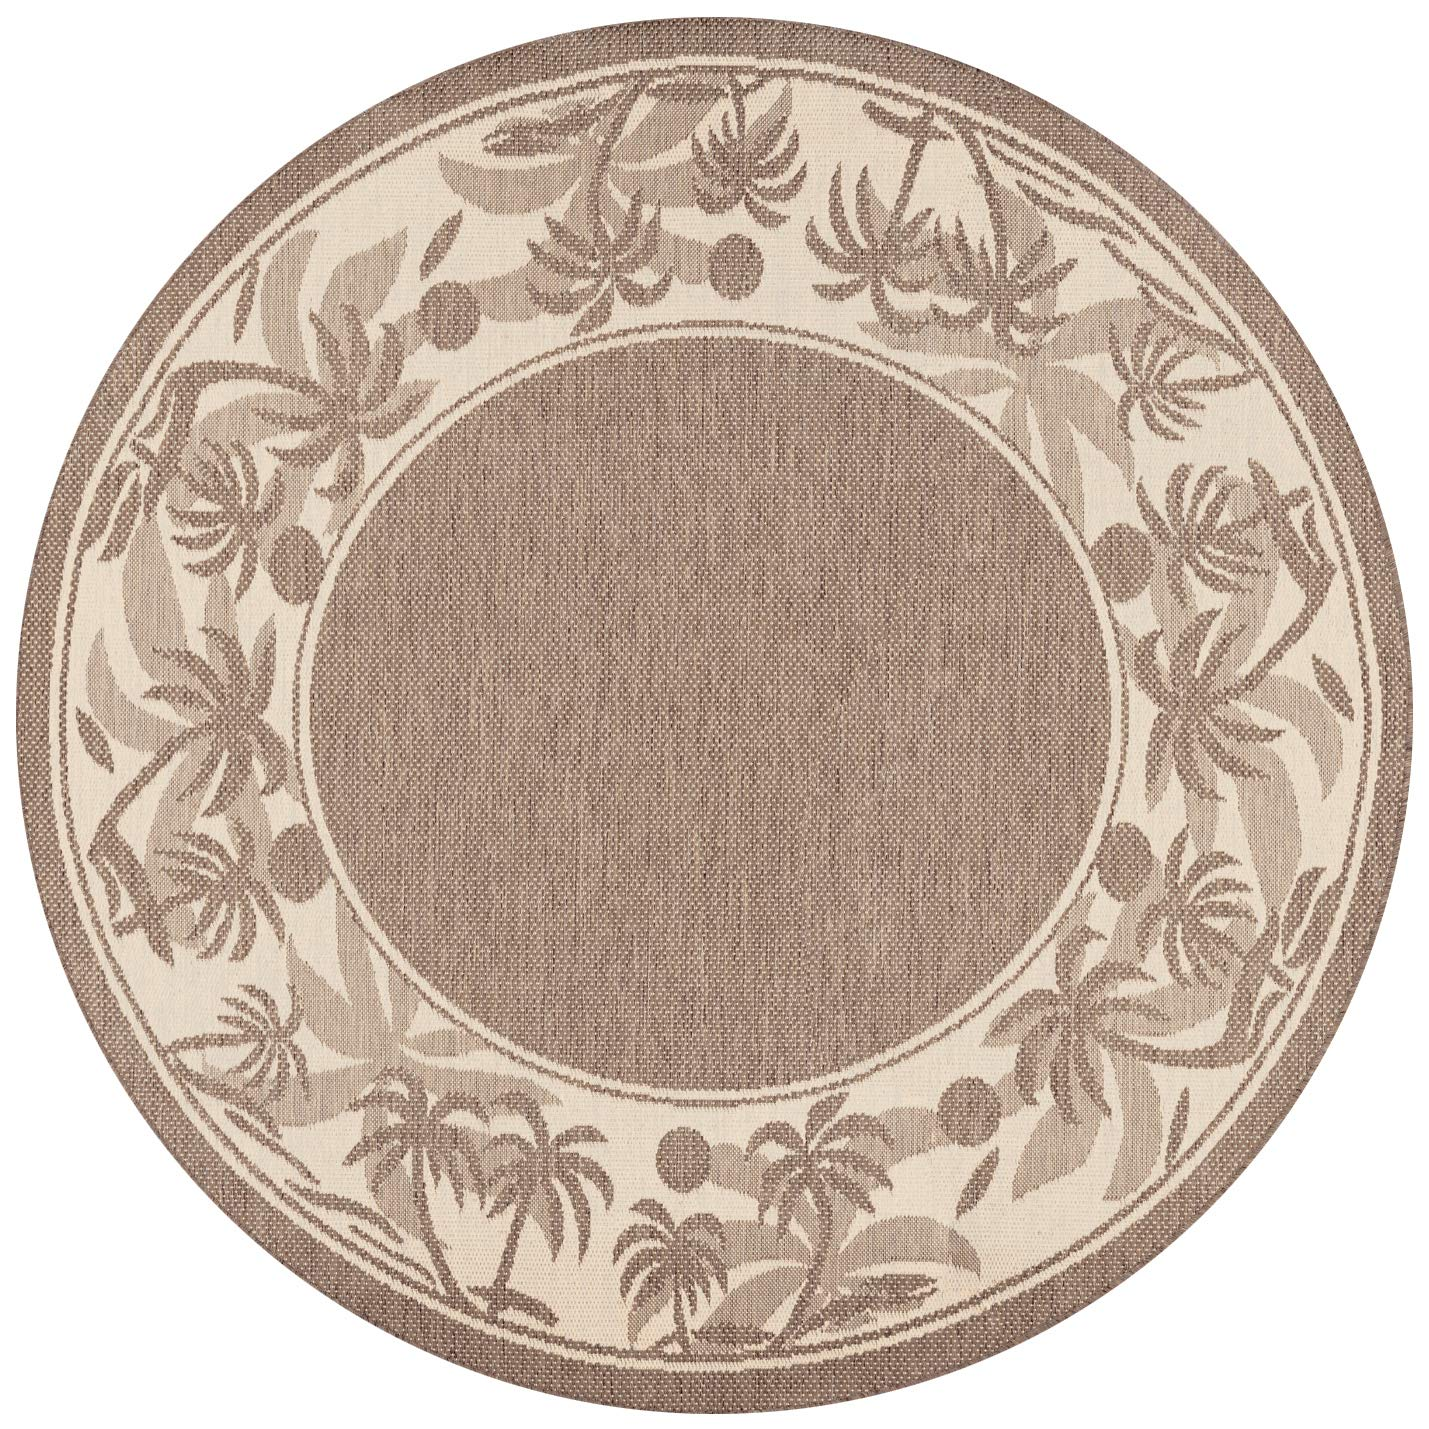 Couristan 1222 0722 Recife Island Retreat Beige Natural Rug, 8-Feet 6-Inch Round